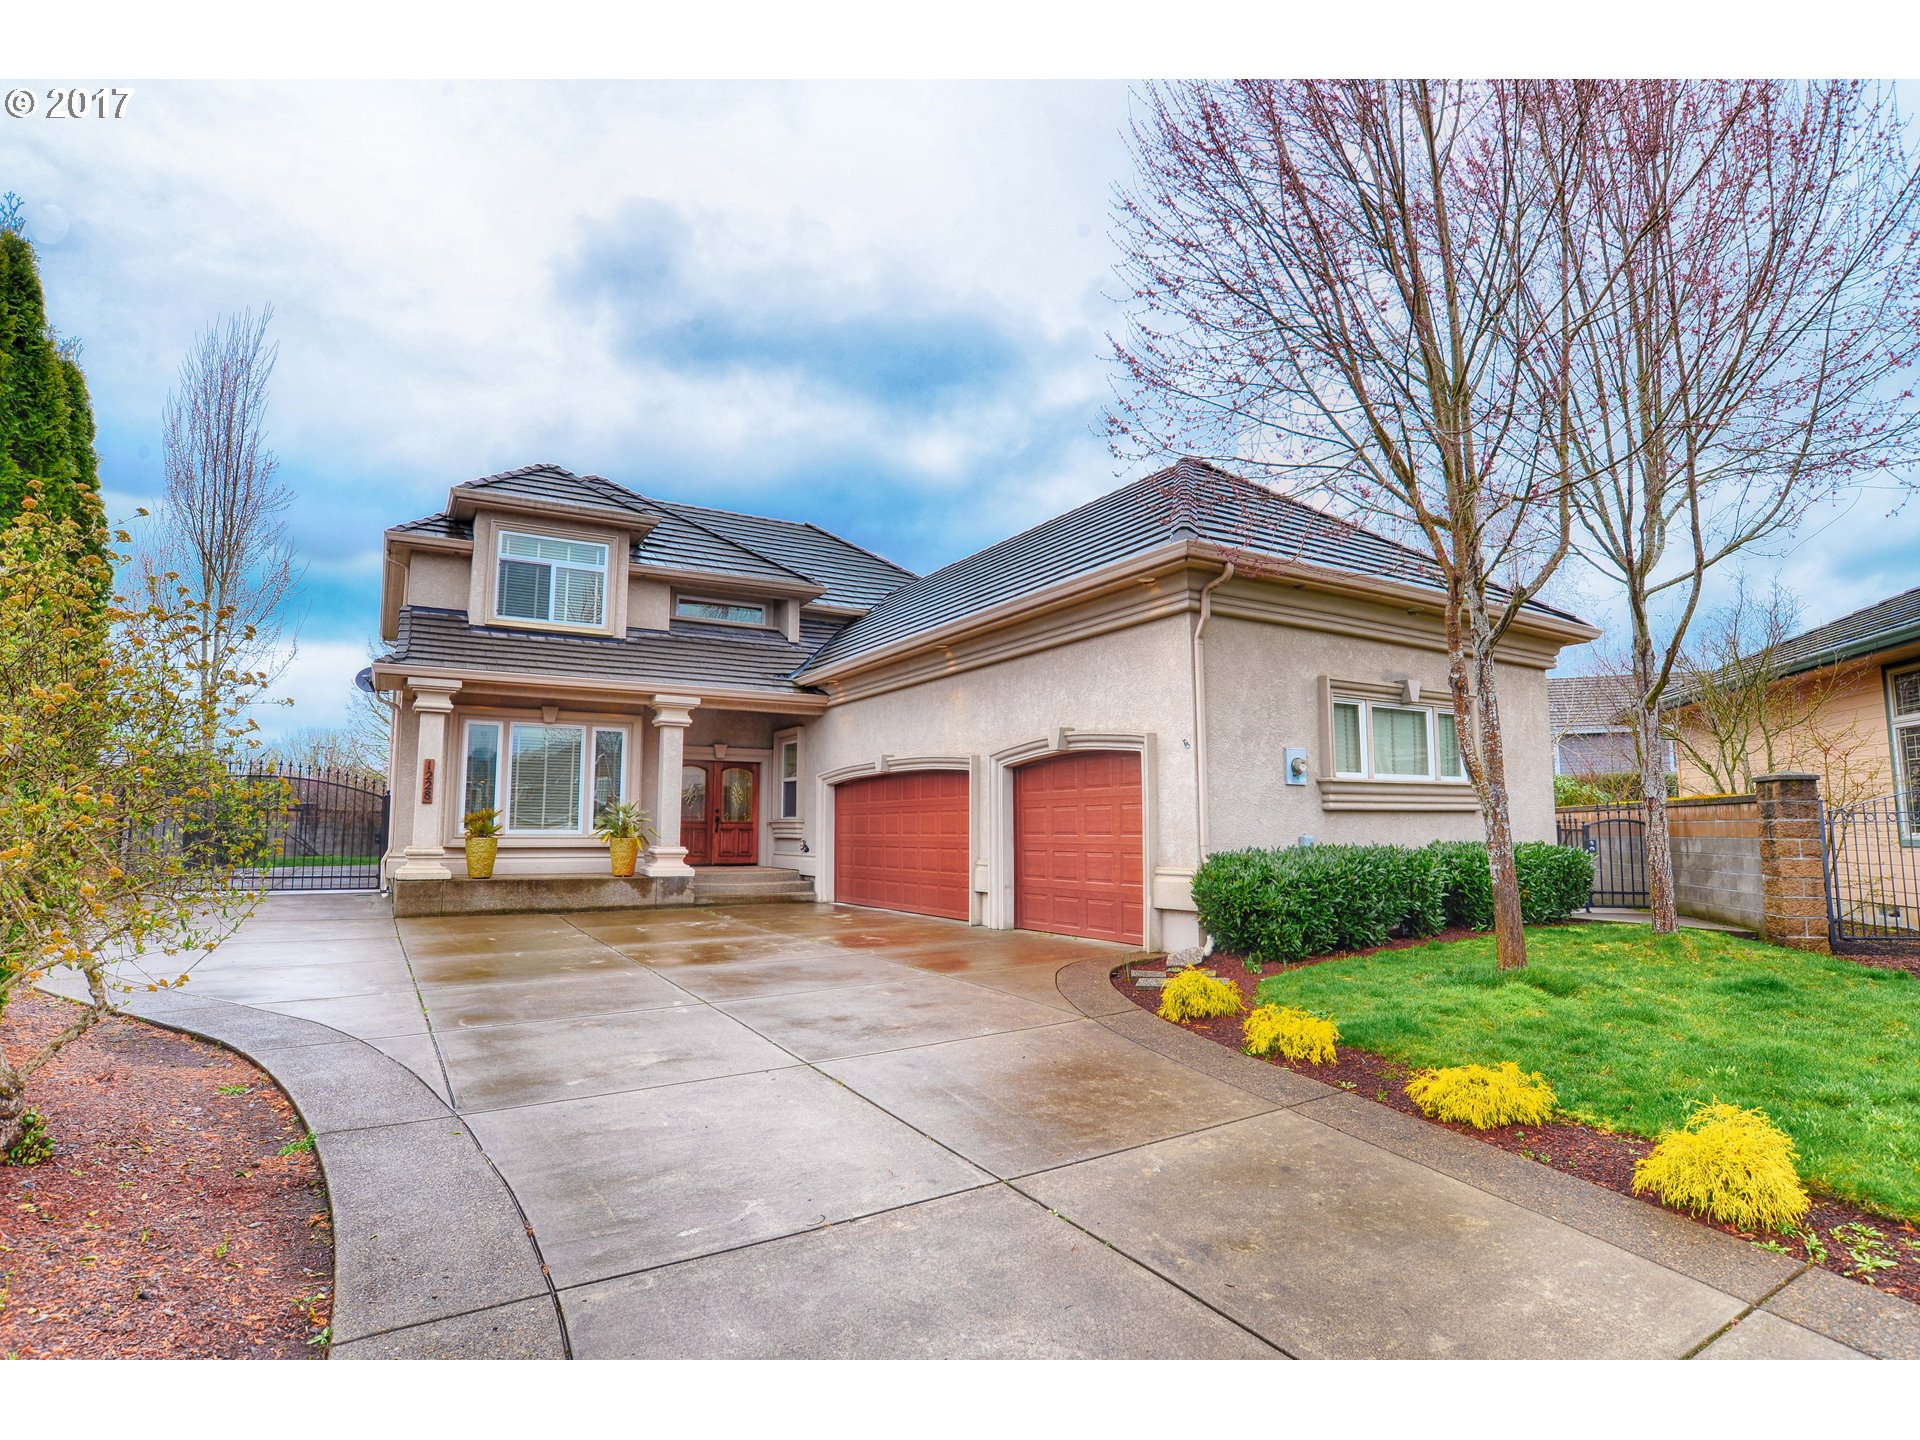 1228 AUGUSTA CT, Creswell, OR 97426